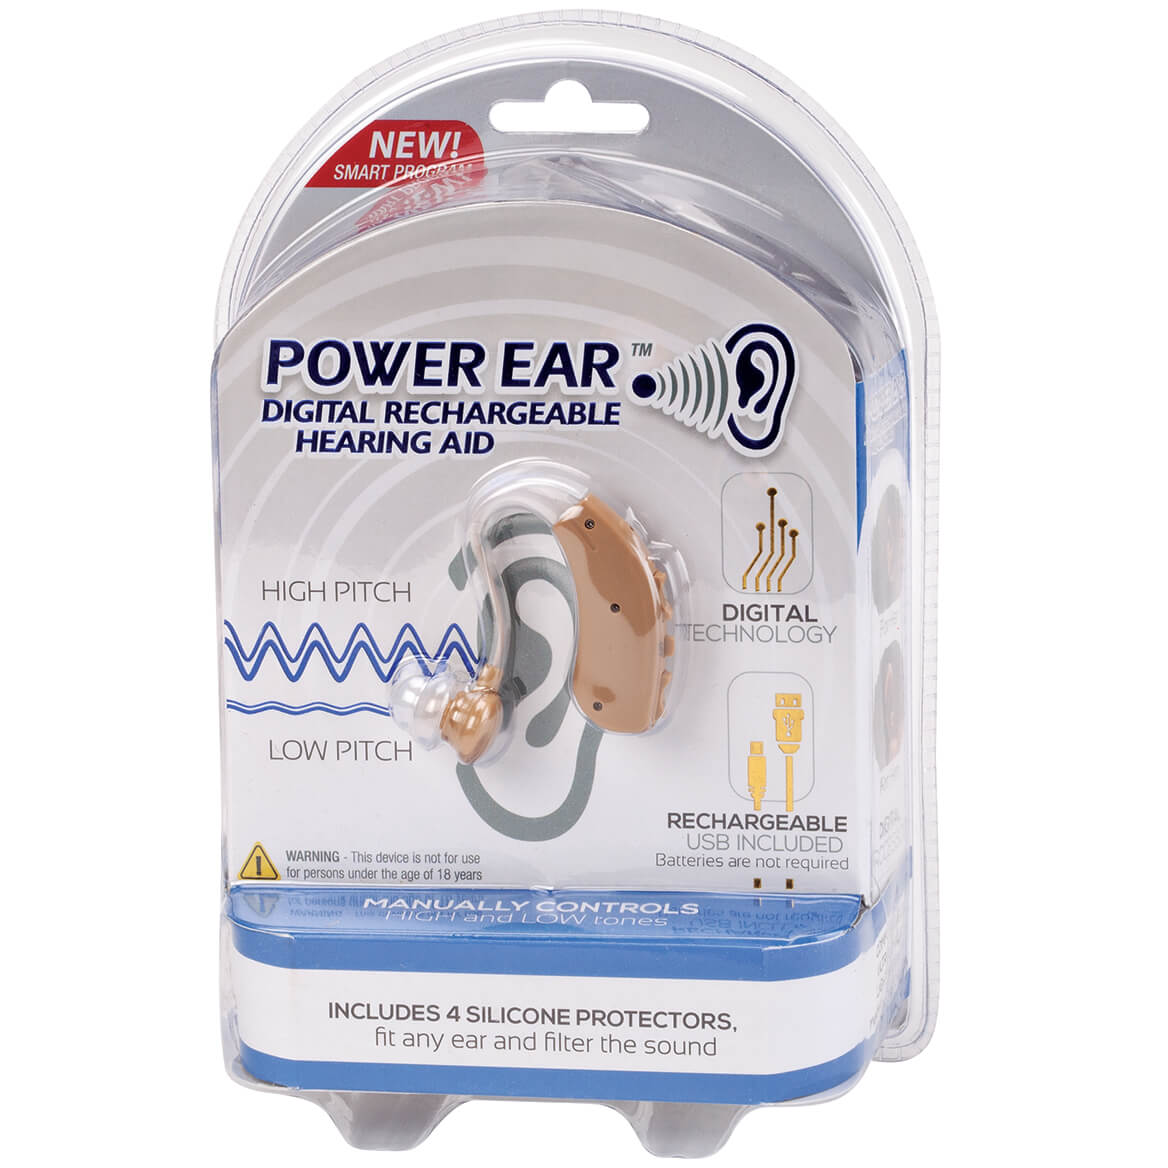 Power Ear™ Digital Rechargeable Hearing Aid             RTV-369214